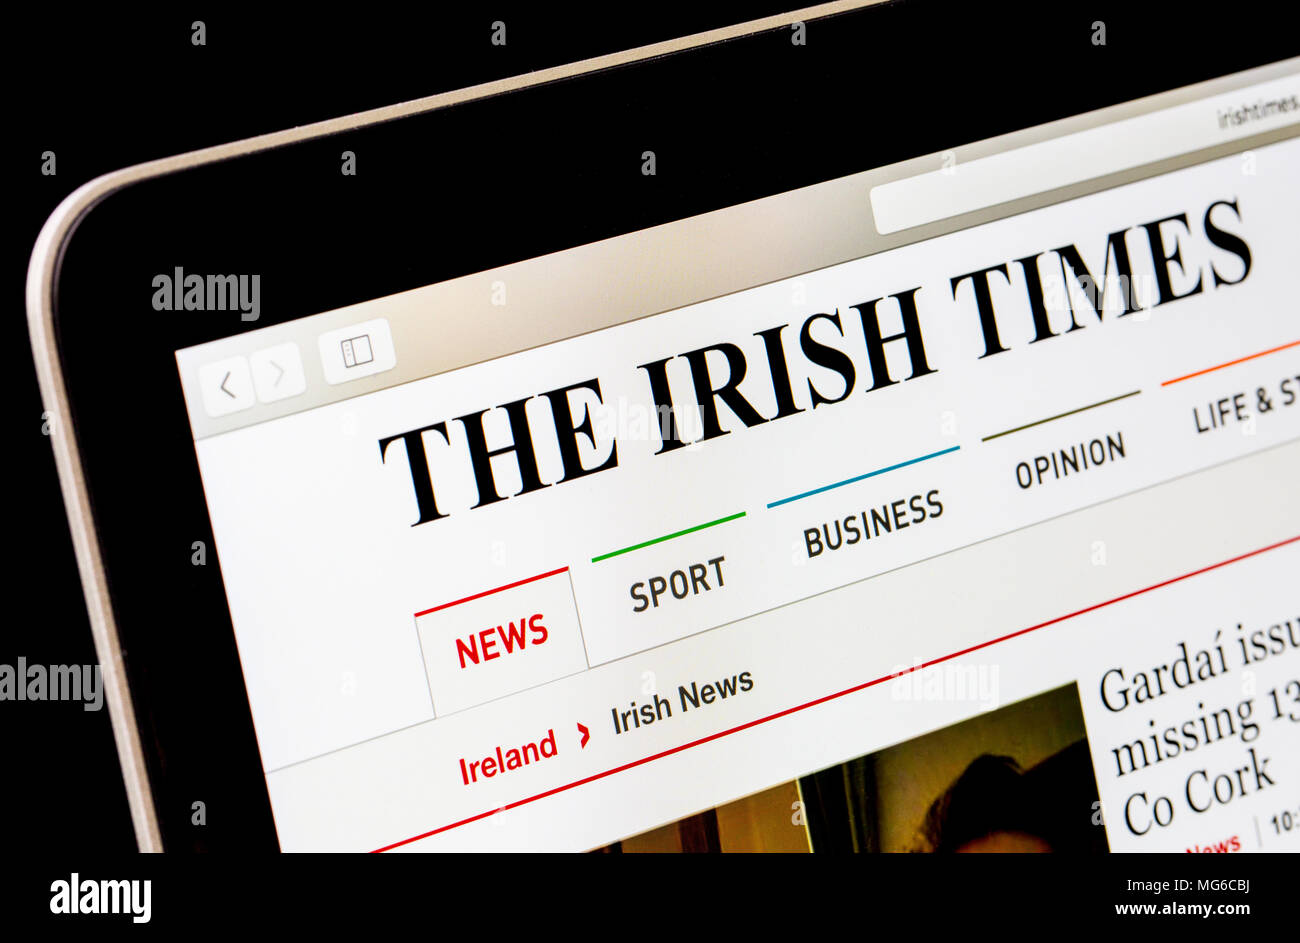 The Irish Times website on a laptop computer - Stock Image